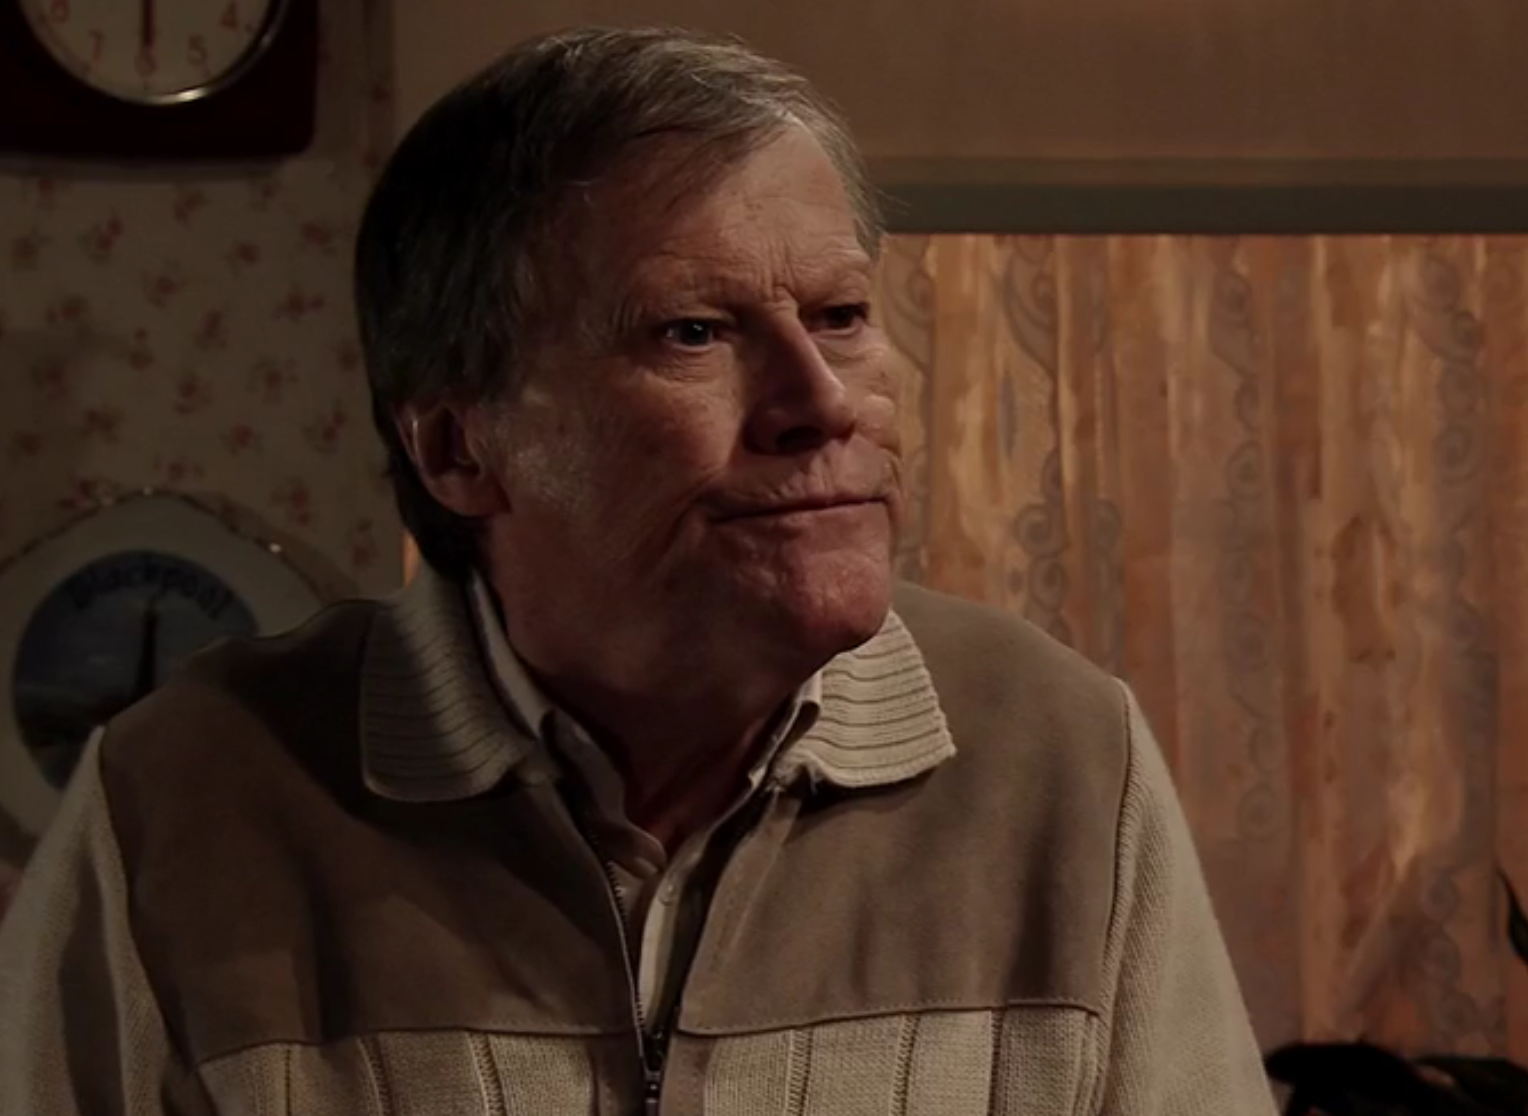 Coronation Street SPOILER: Roy gets a blast from the past